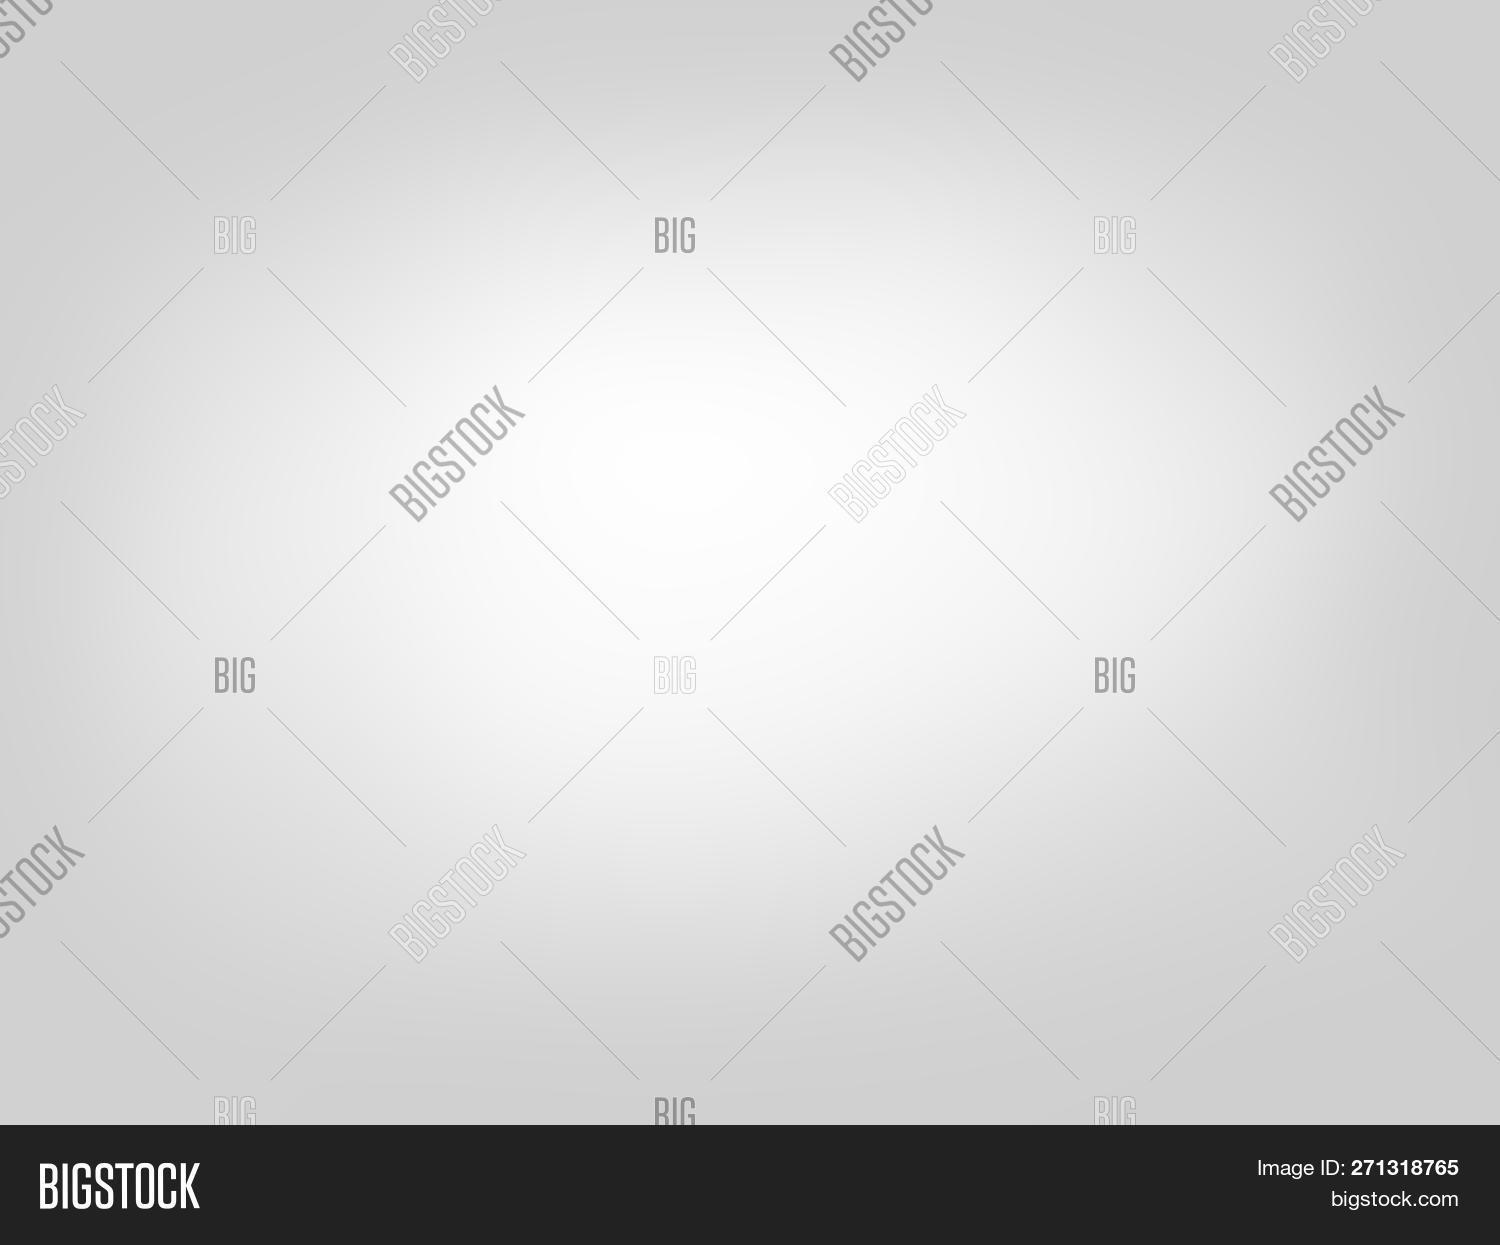 abstract,backdrop,background,black,blank,blur,blurred,bright,clean,color,design,empty,gradient,graphic,gray,grey,illustration,light,modern,pattern,template,texture,wall,wallpaper,web,white